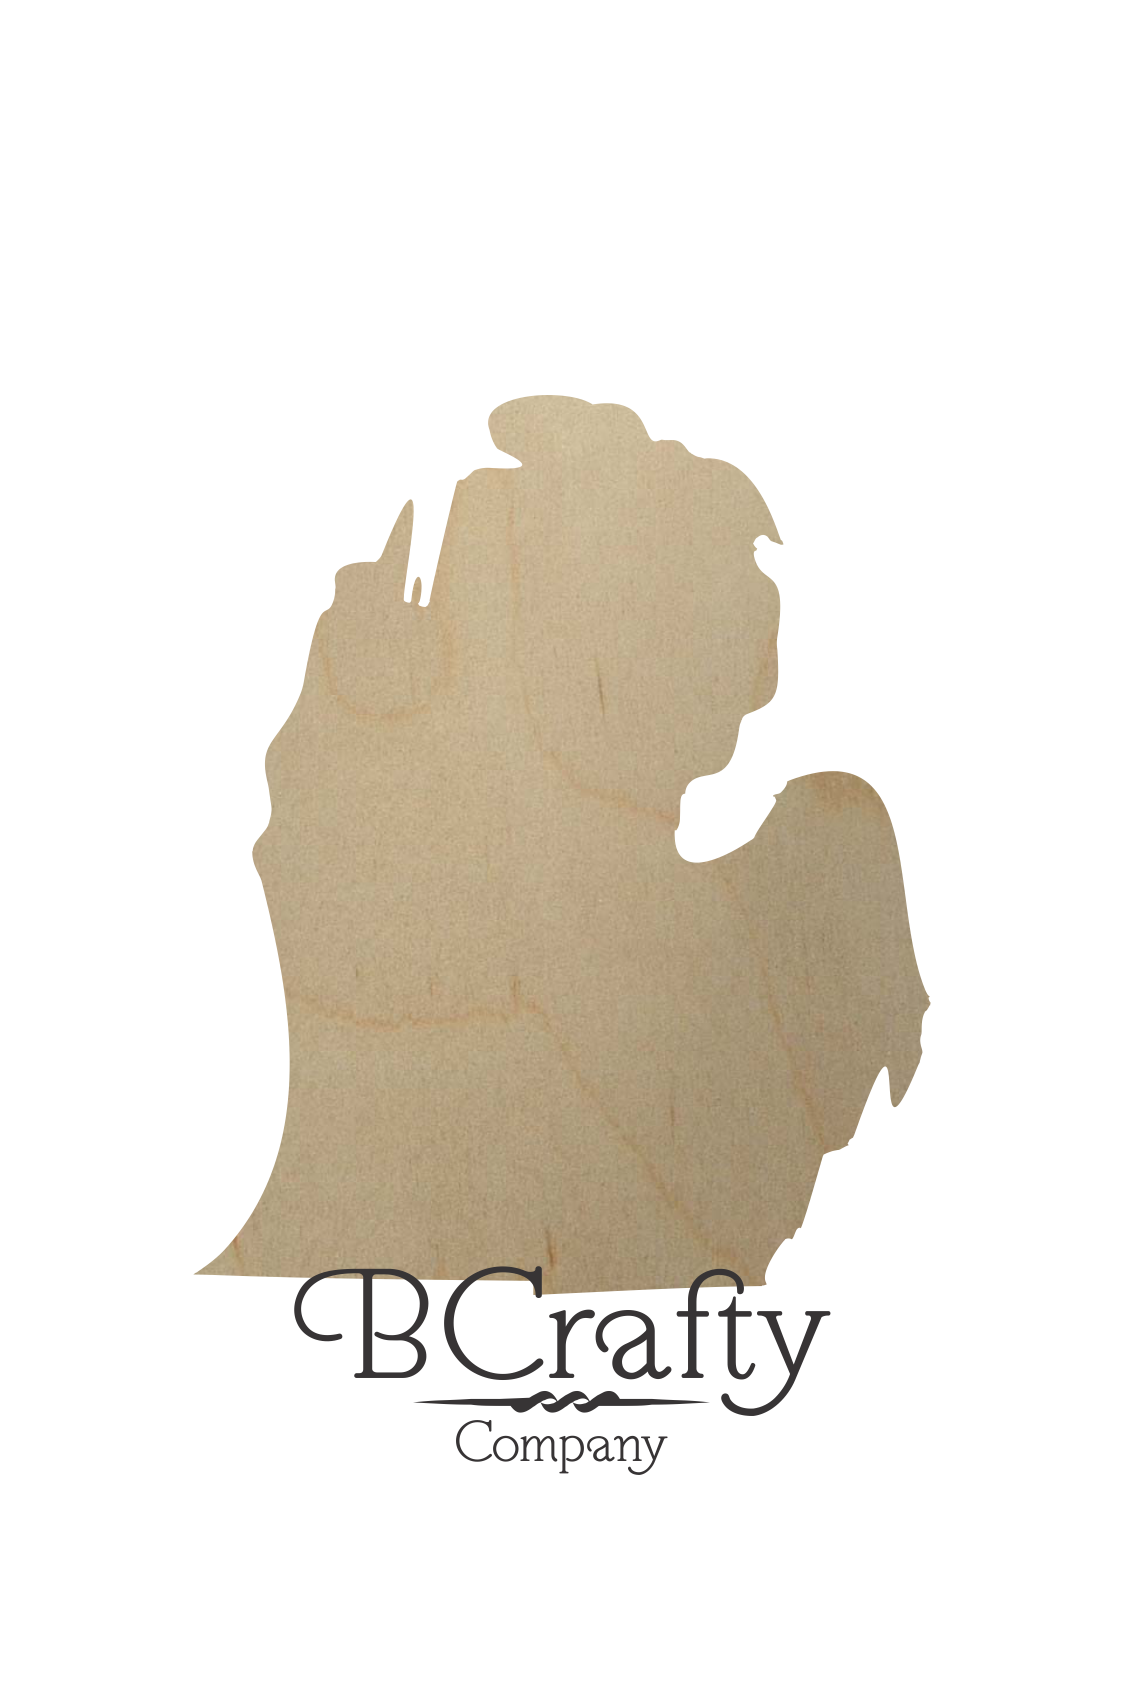 Wooden Michigan State Shape Cutout